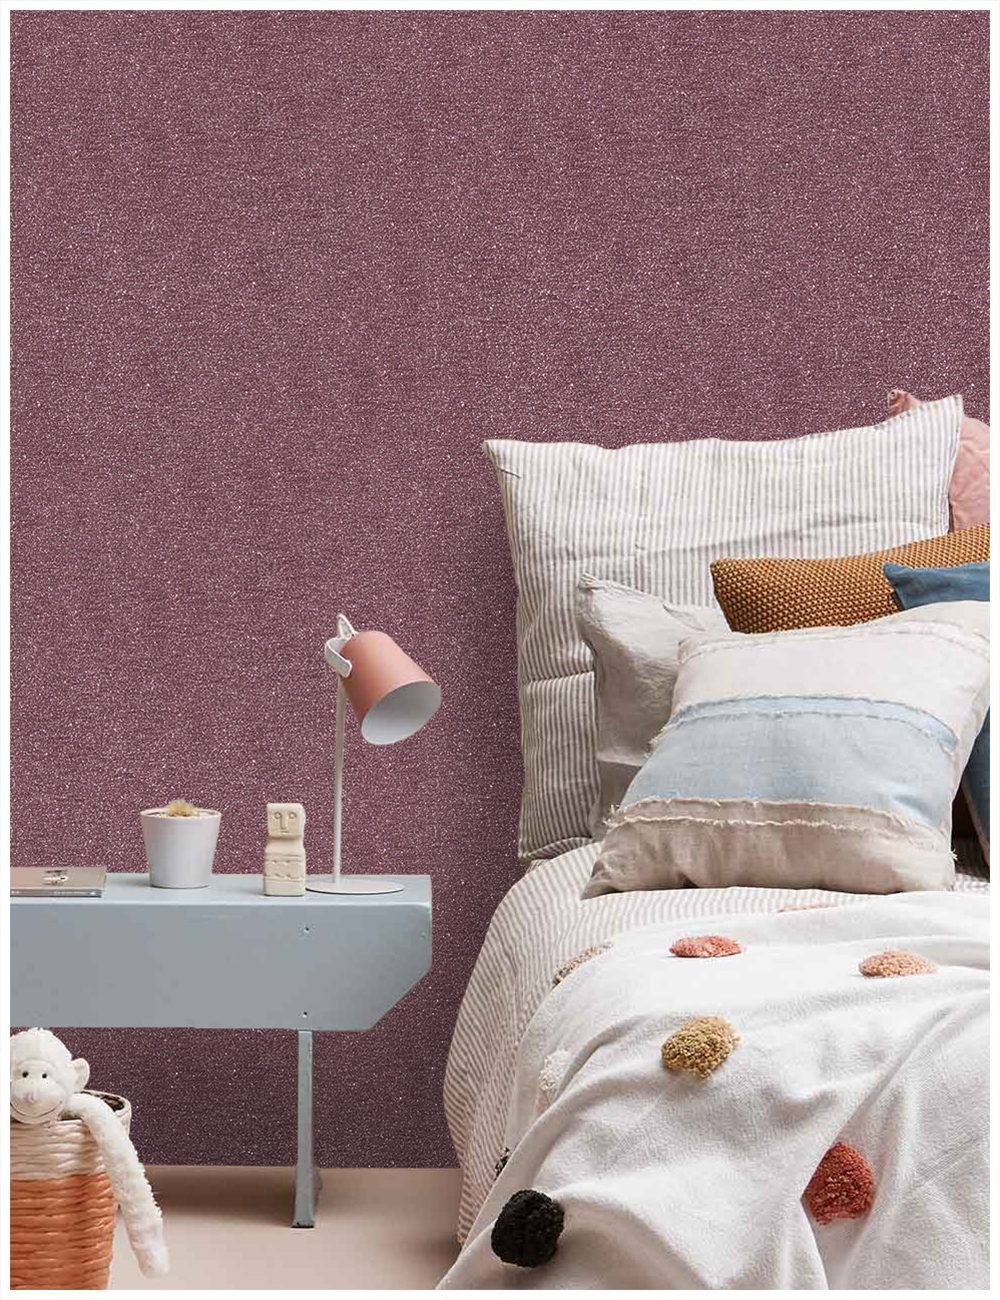 Big Offer #84ac3 - HaokHome Red Sparkly Glitter Wallpaper ...